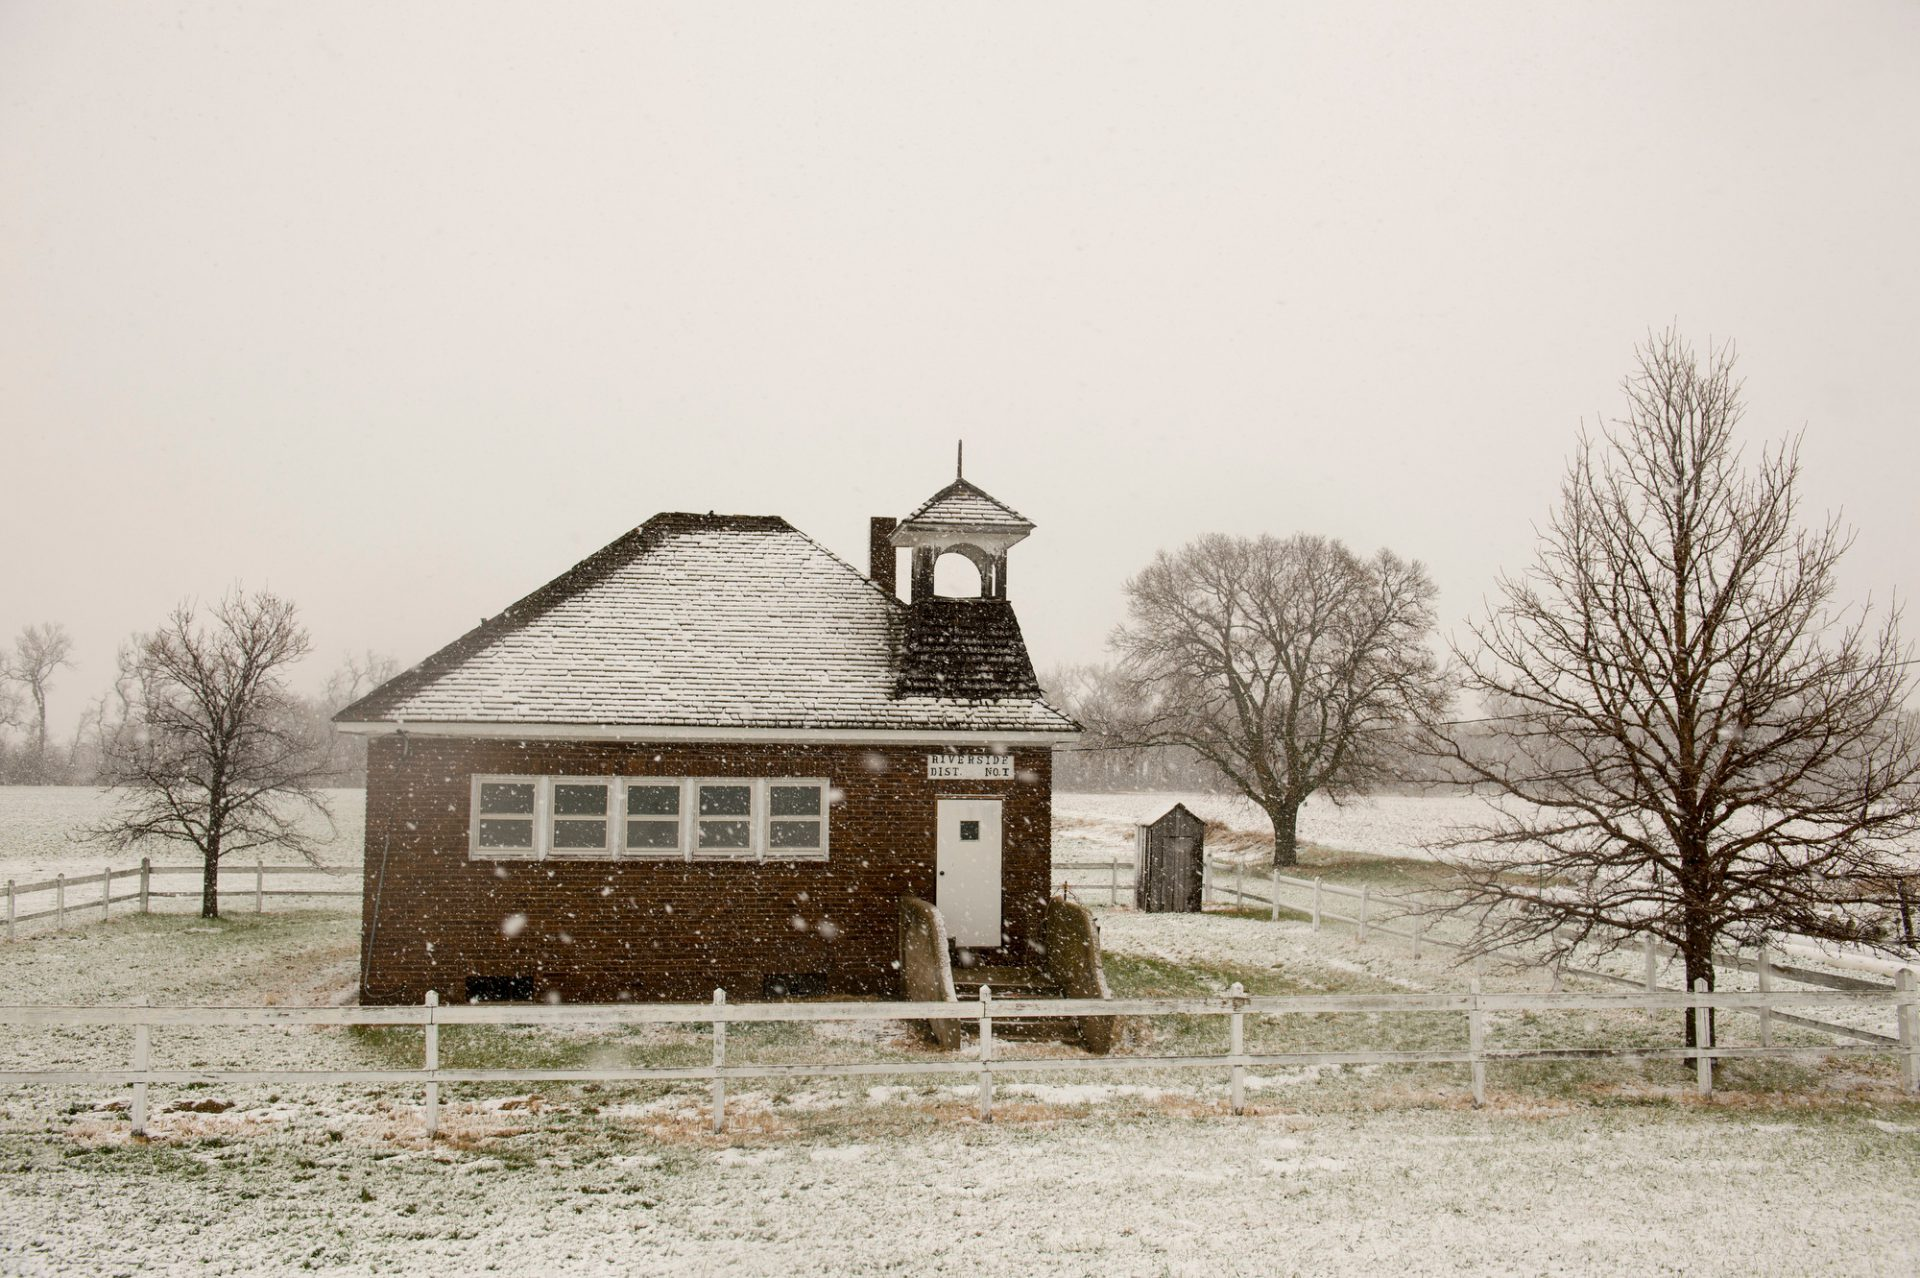 Photo: Snowstorm at a country school near Burwell, Nebraska.